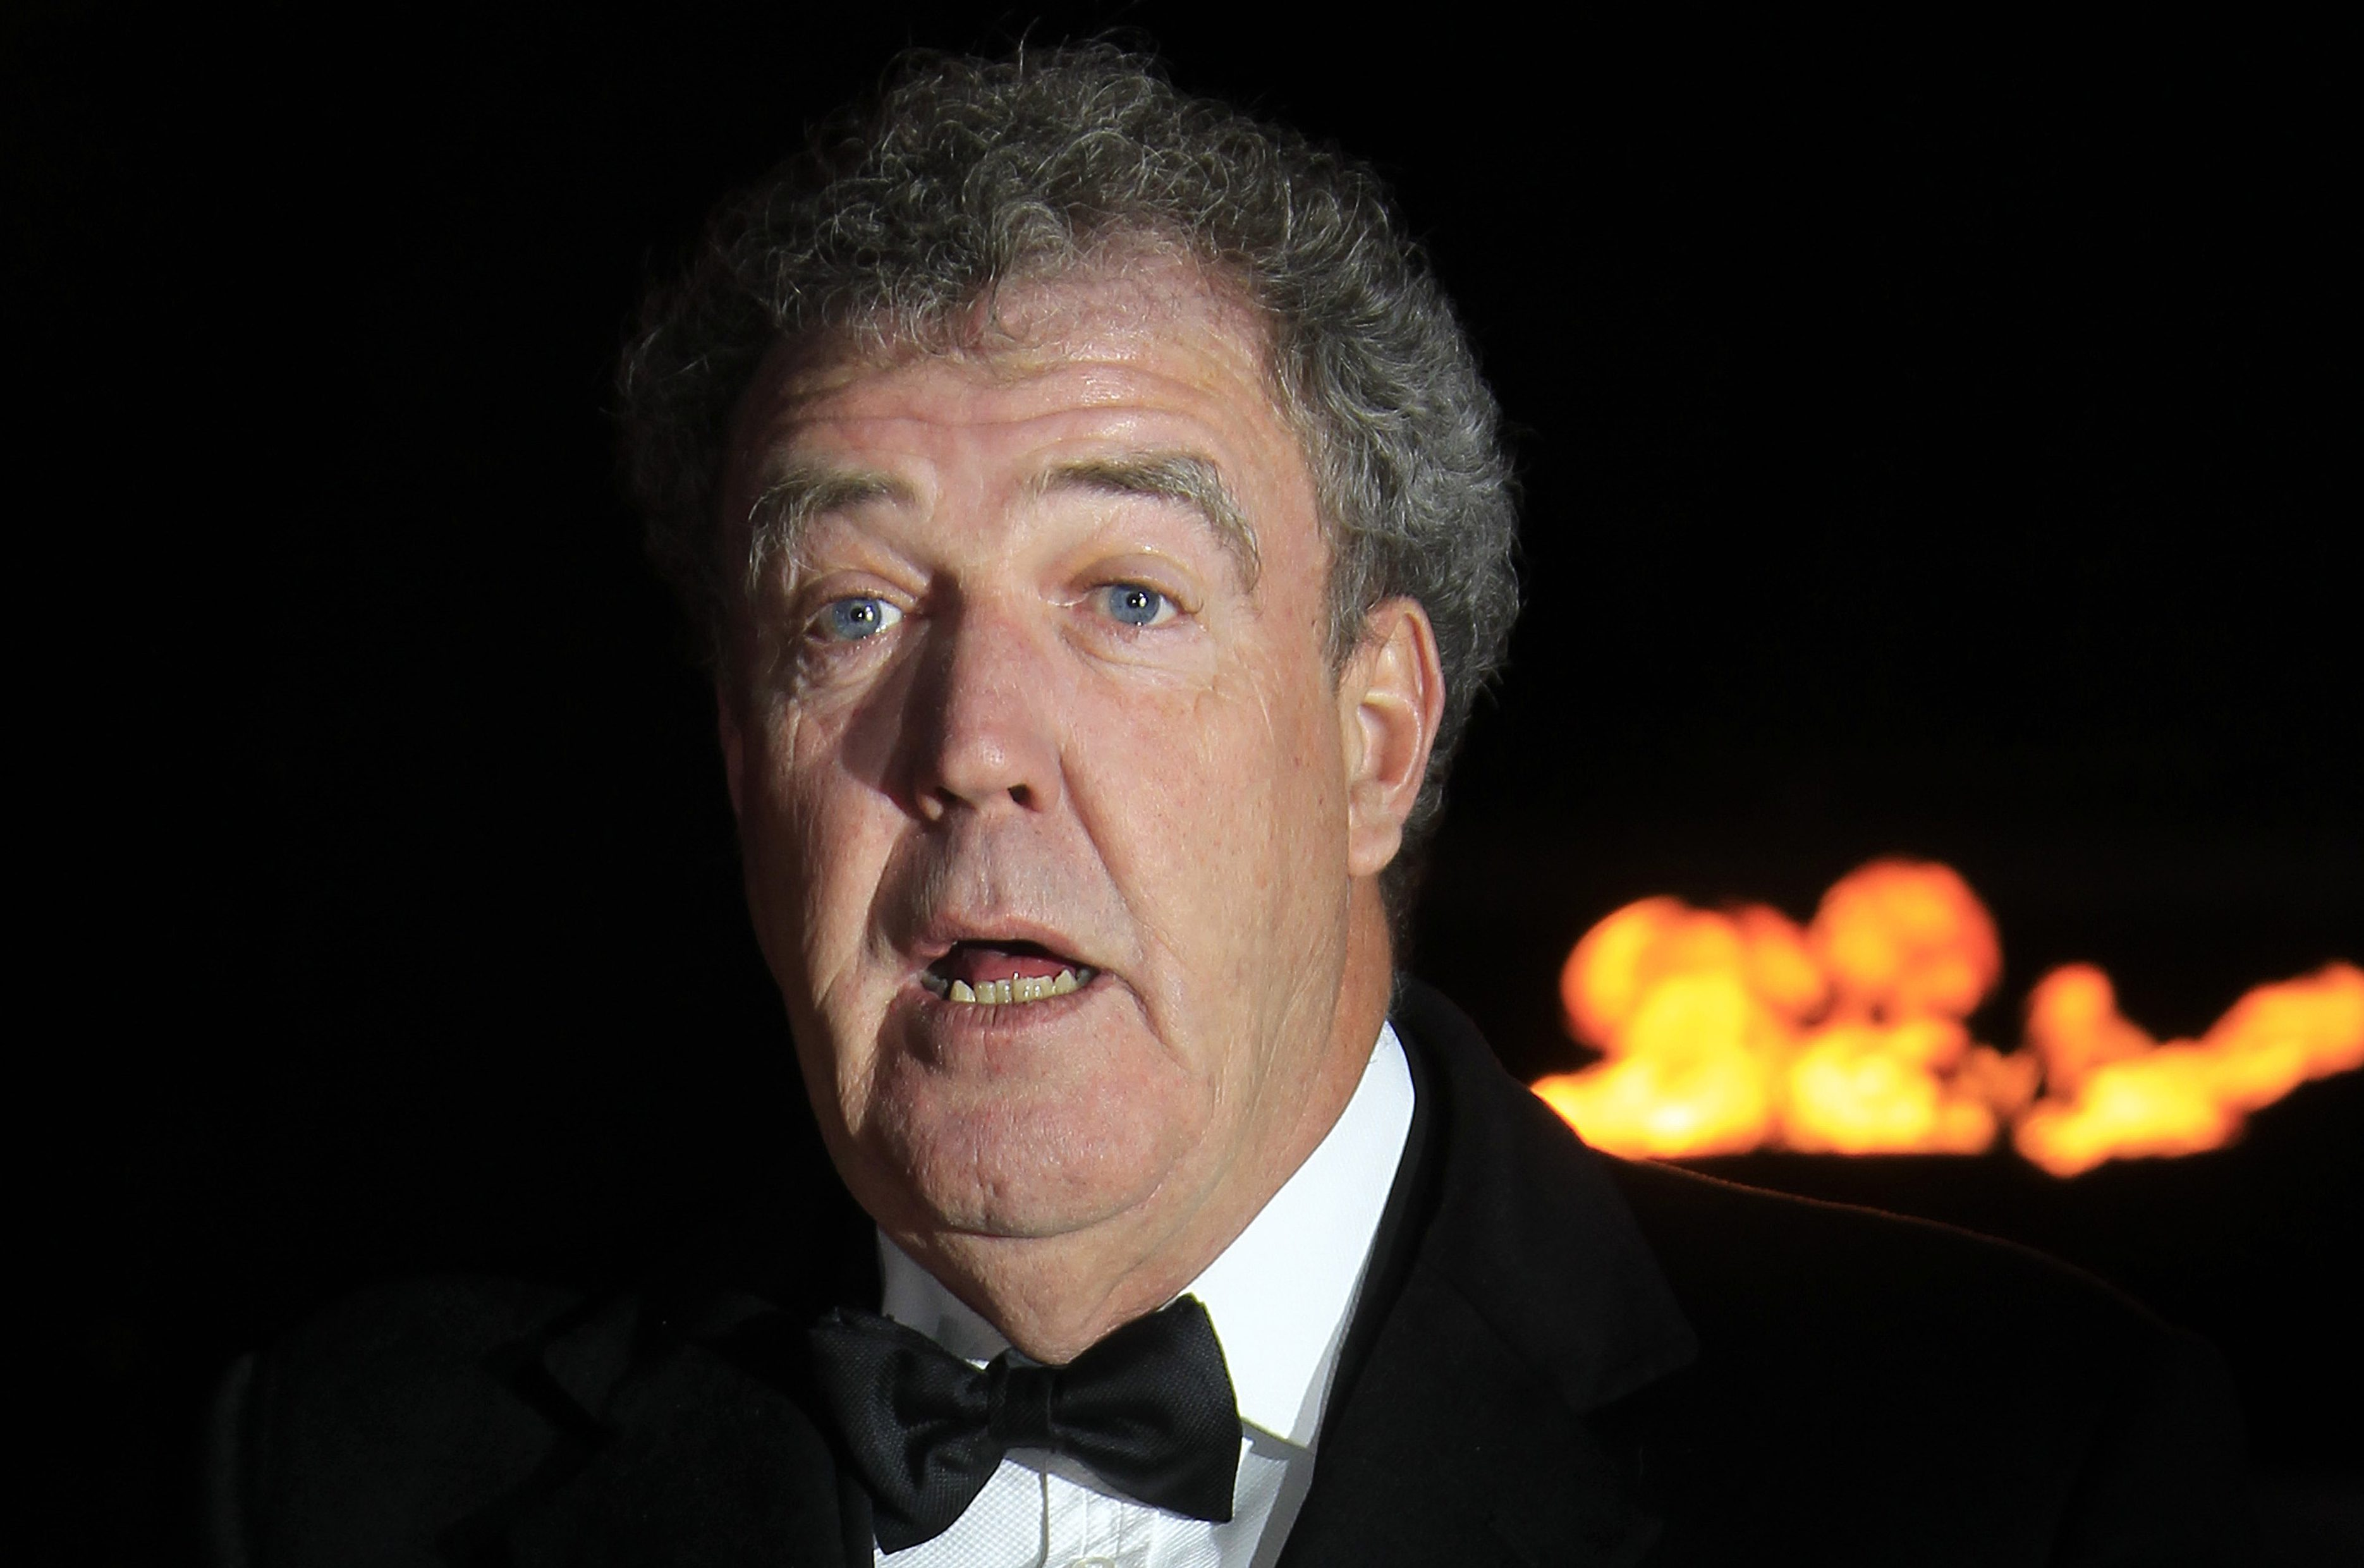 Jeremy Clarkson arrives on the red carpet for the Sun Military Awards at the Imperial War Museum, Thursday, Dec. 6, 2012. The Millies, saluting the bravery of Britain's Armed Forces, are in their fifth year.(Photo by Joel Ryan/Invision/AP)